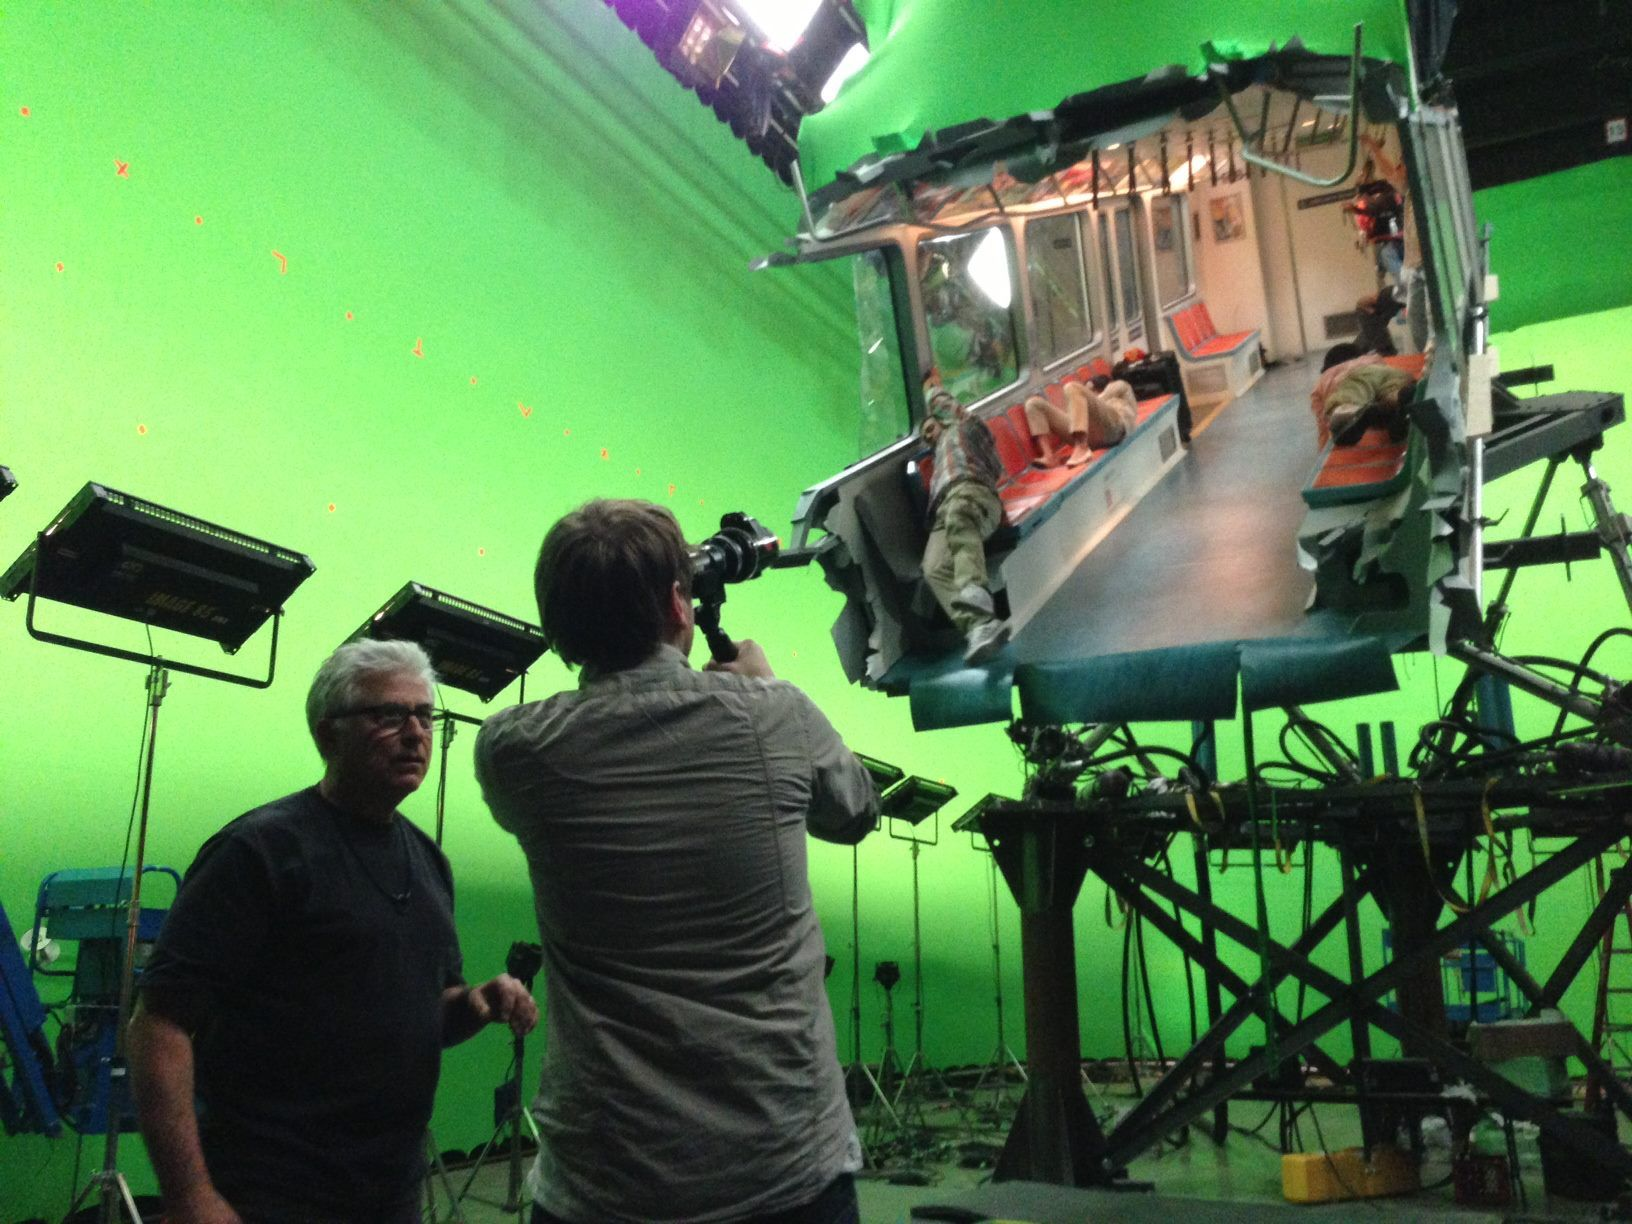 A Subway Gets Ripped Open on the Set of Godzilla